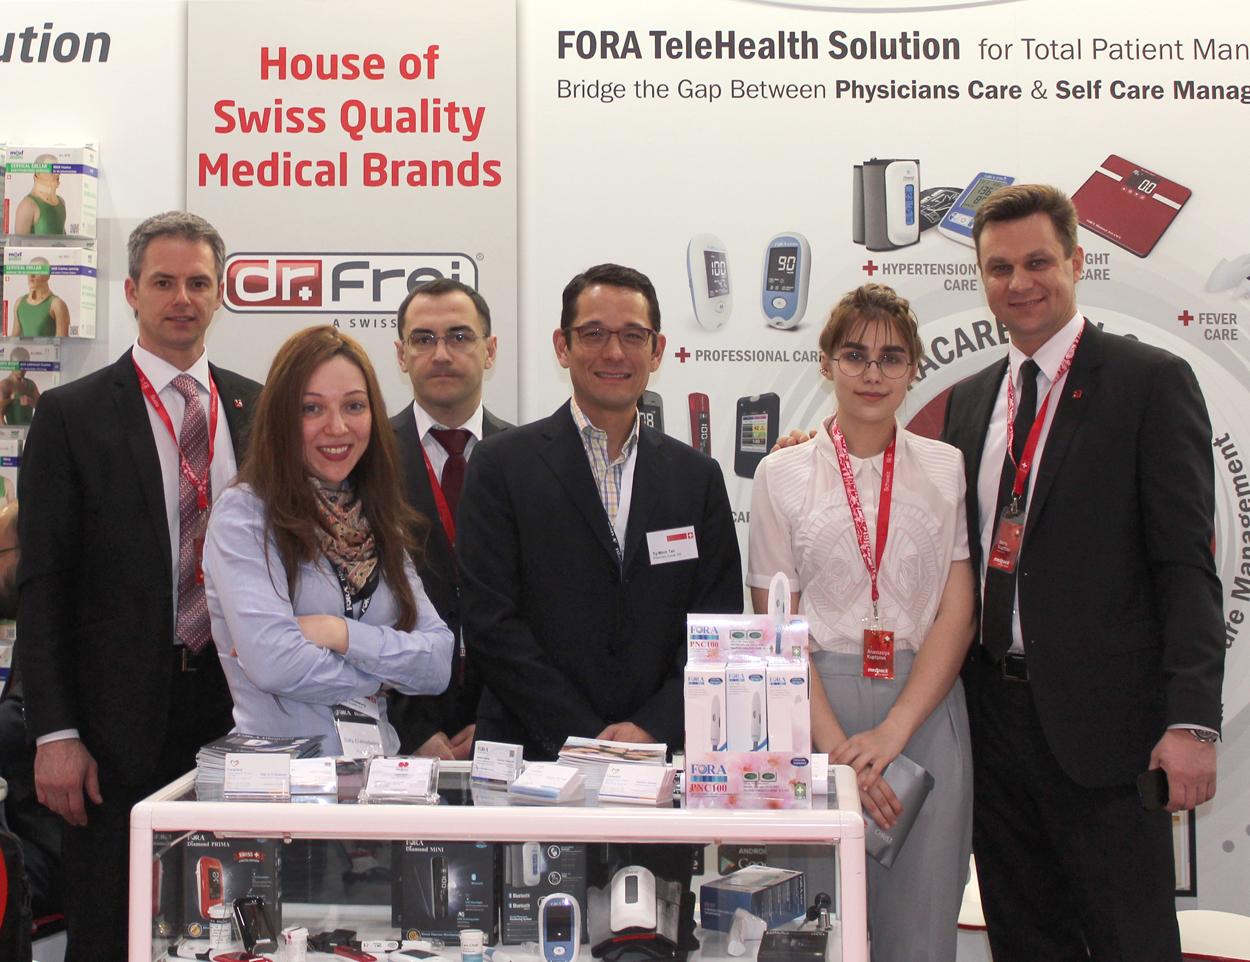 Dr. Frei at Arab Health 2015